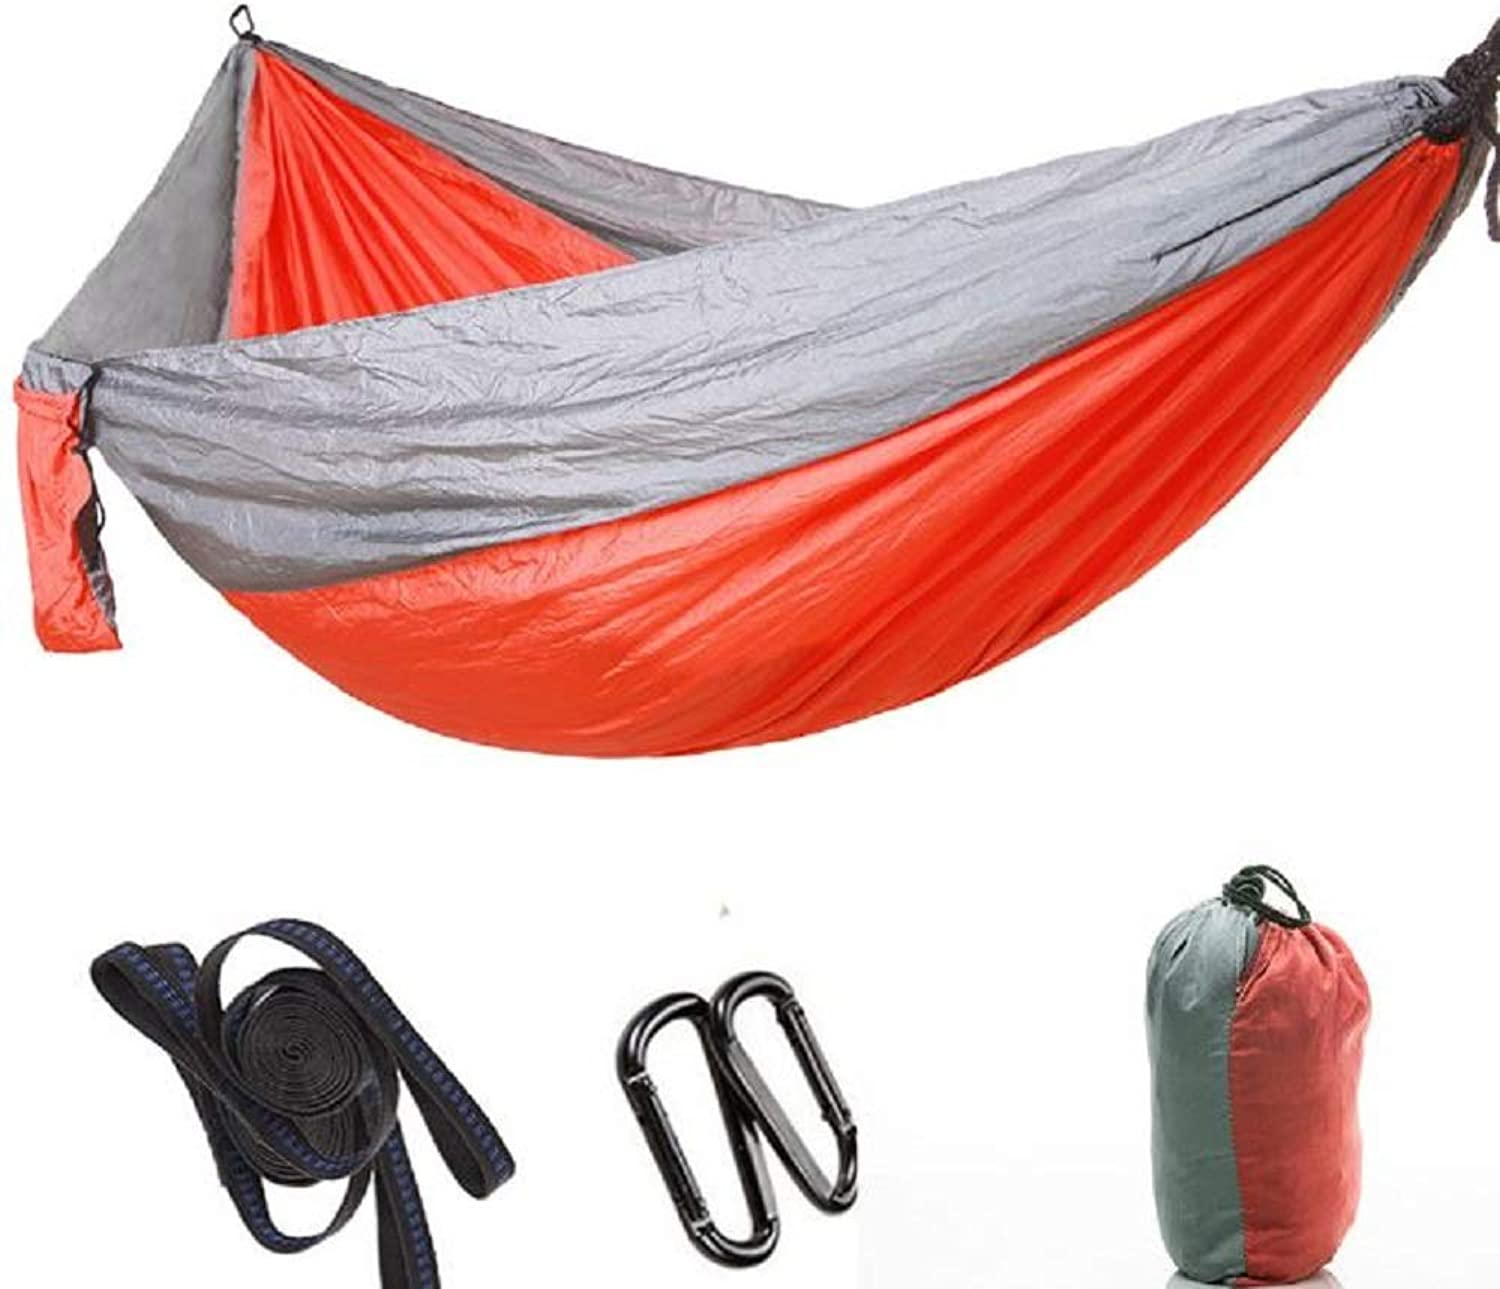 Outdoor Hammock, UltraLight Portable Parachute Camping Hammock with A Load Capacity of 200Kg, Suitable for Outdoor Travel Backpacks Using 300×200Cm